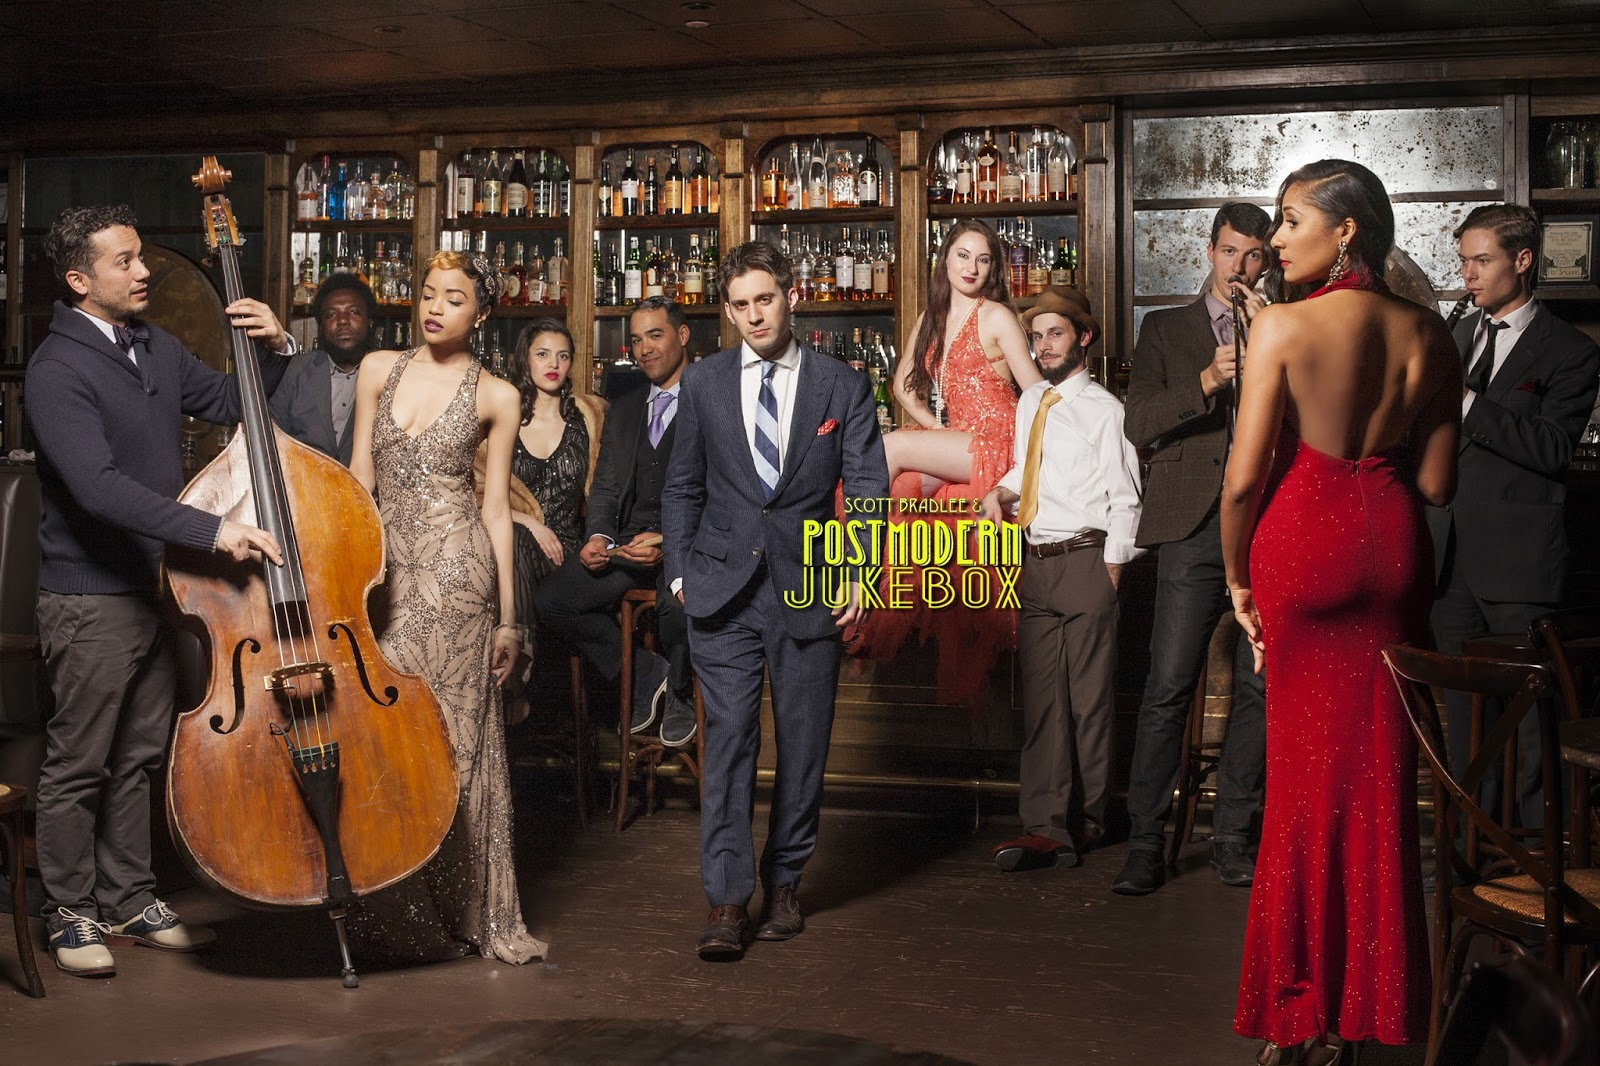 Go back in time with Postmodern Jukebox LIVE in KL